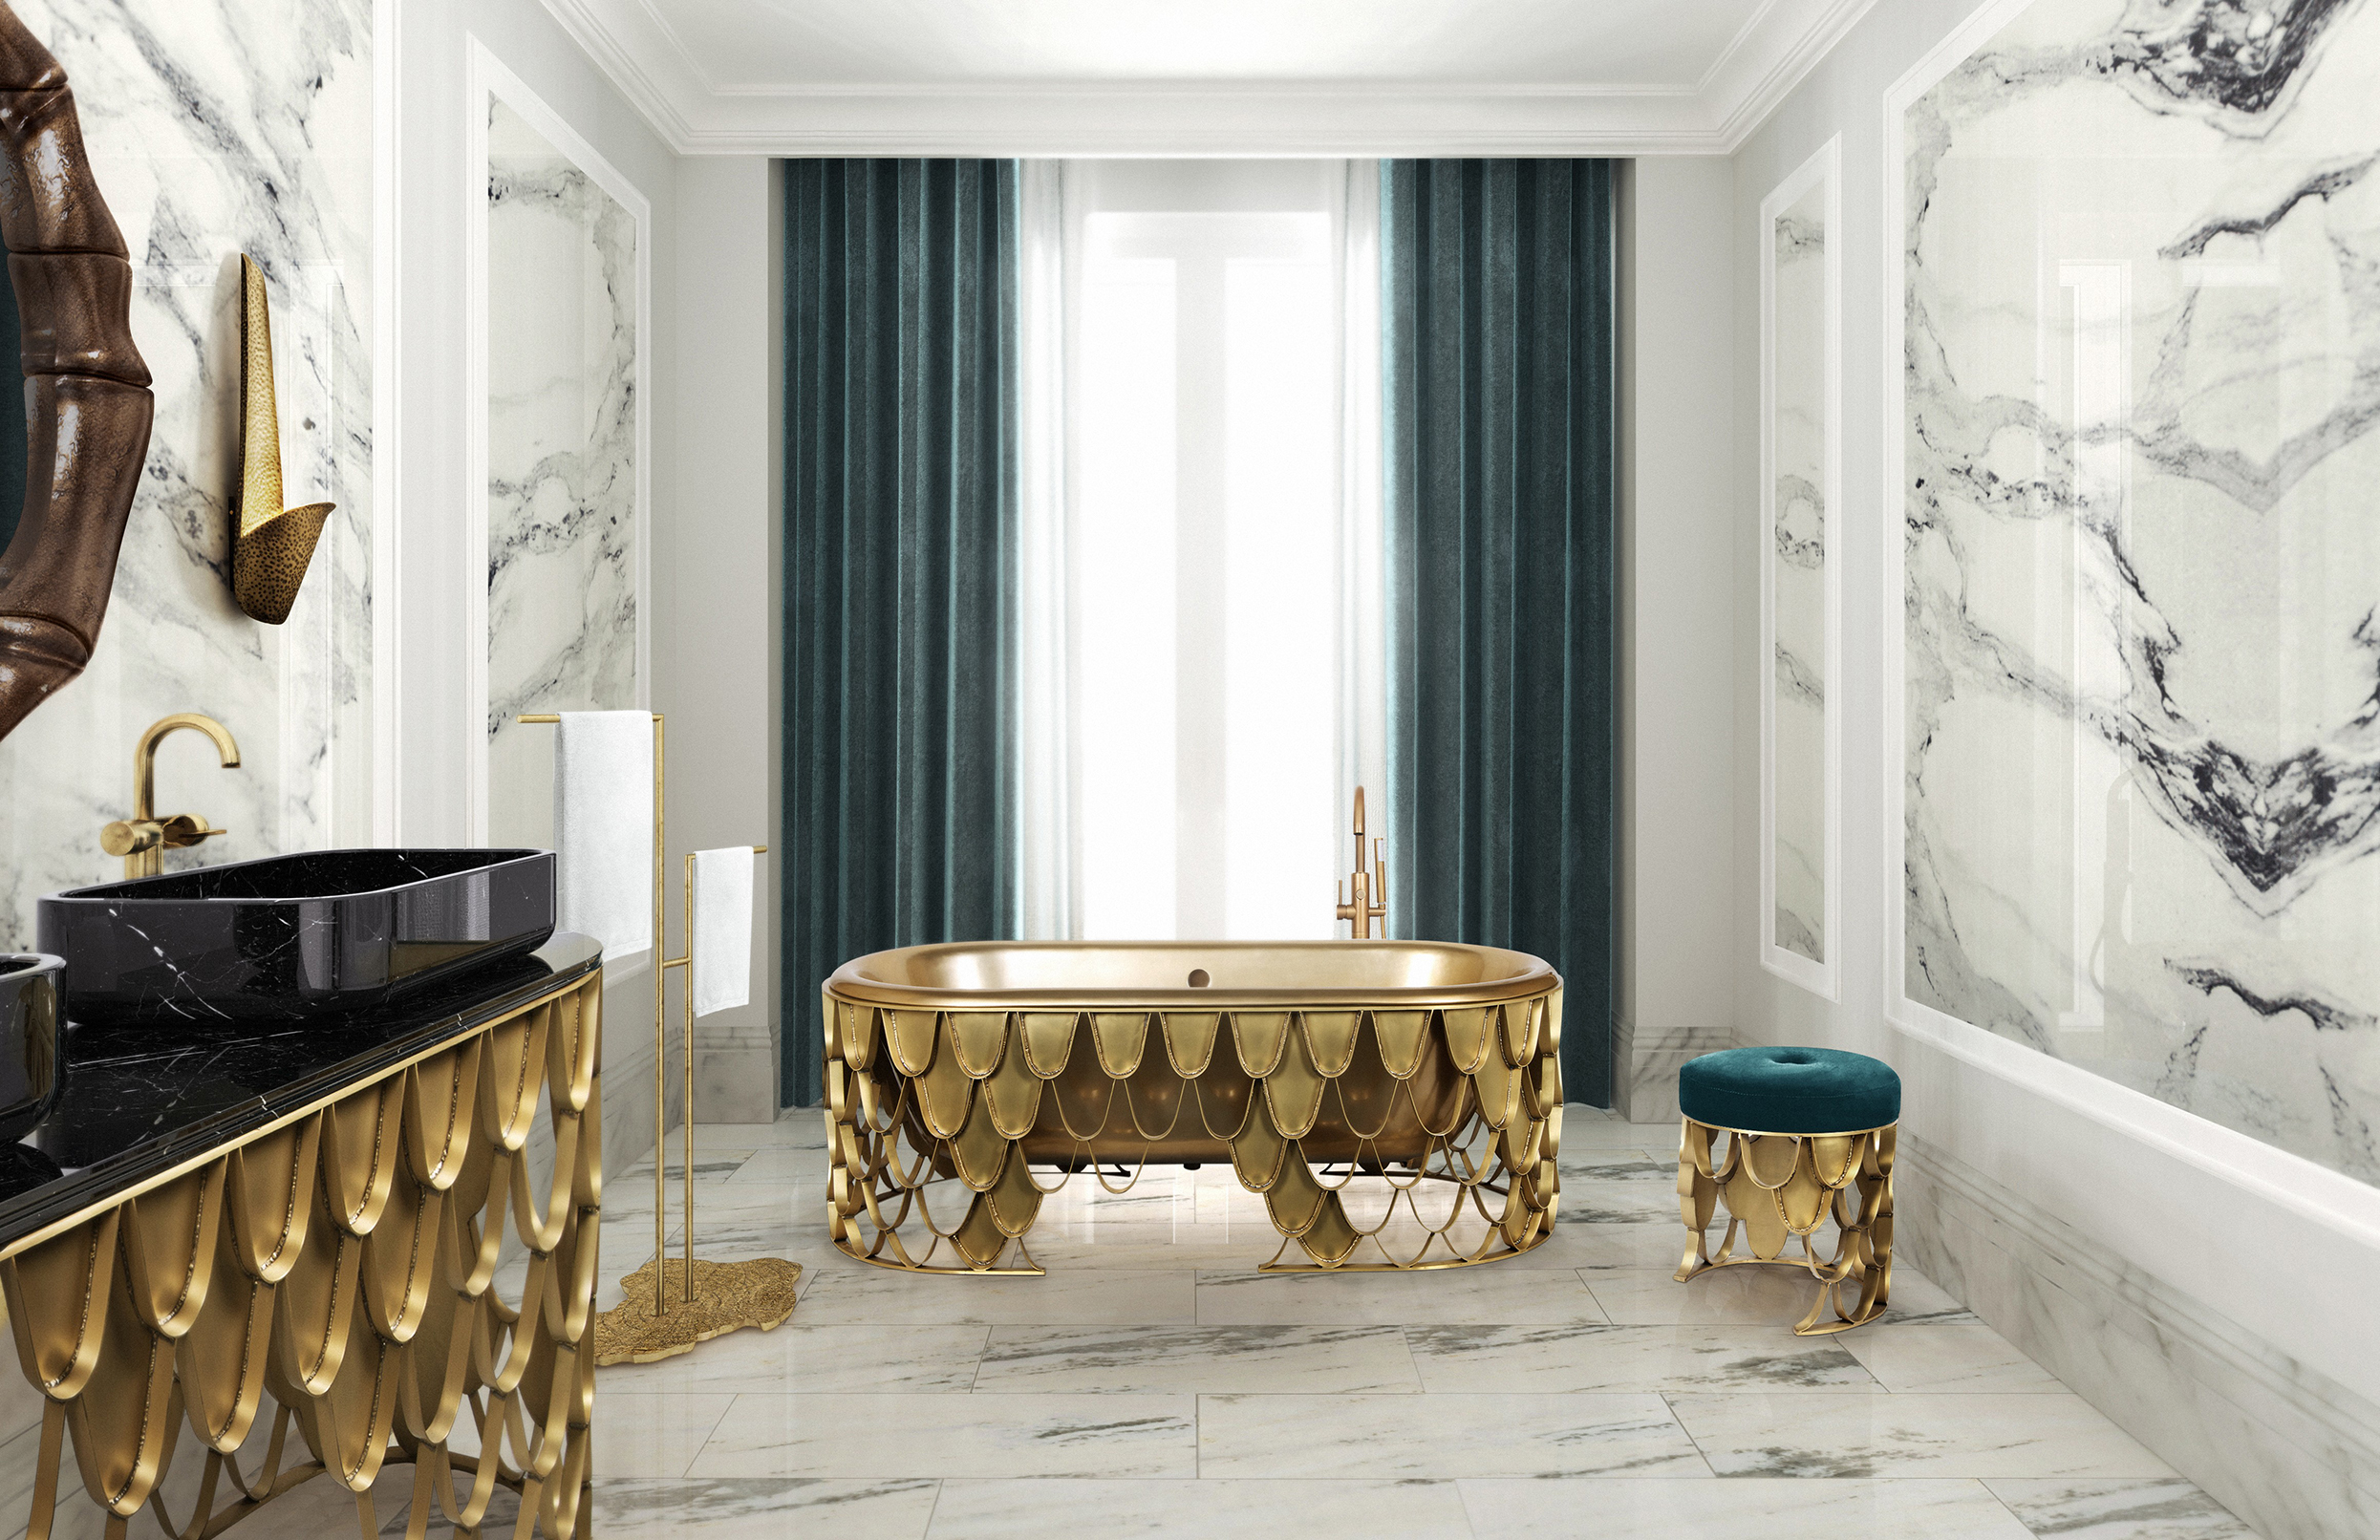 Decorating Bathroom with Golden Furniture Golden Furniture Decorating Bathroom with Golden Furniture koi collection